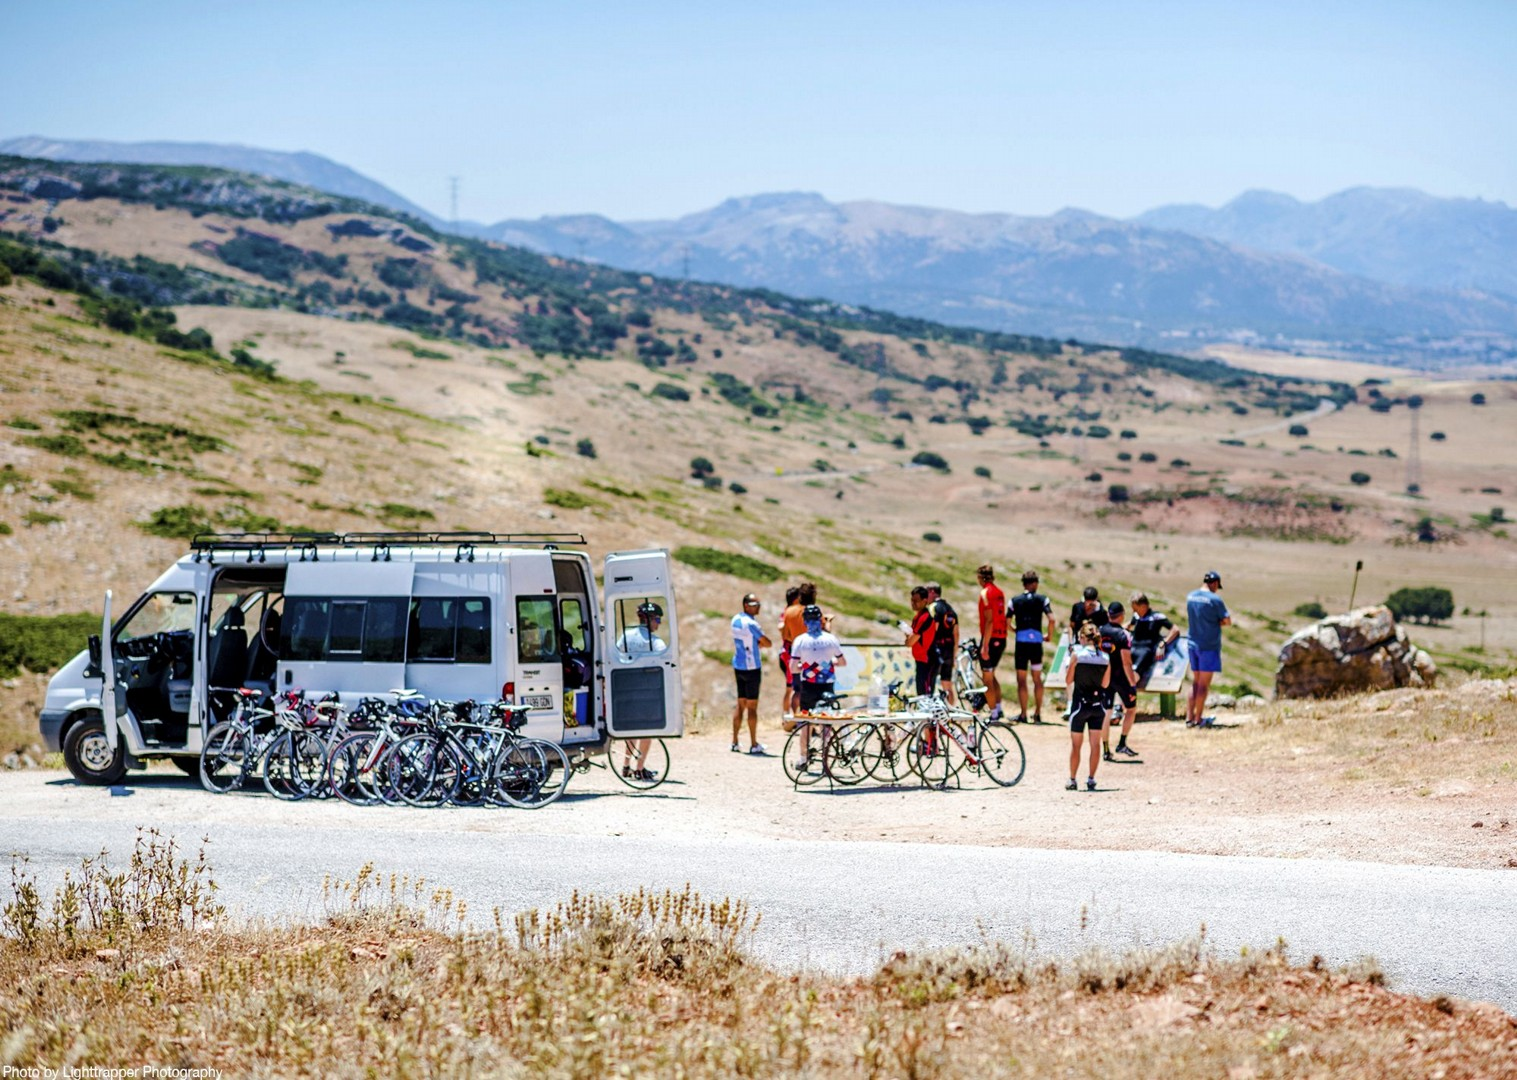 group-picnics-lunch-guided-tour-road-cycling-fun-spain.jpg - Southern Spain - Roads of Ronda - Guided Road Cycling Holiday - Road Cycling